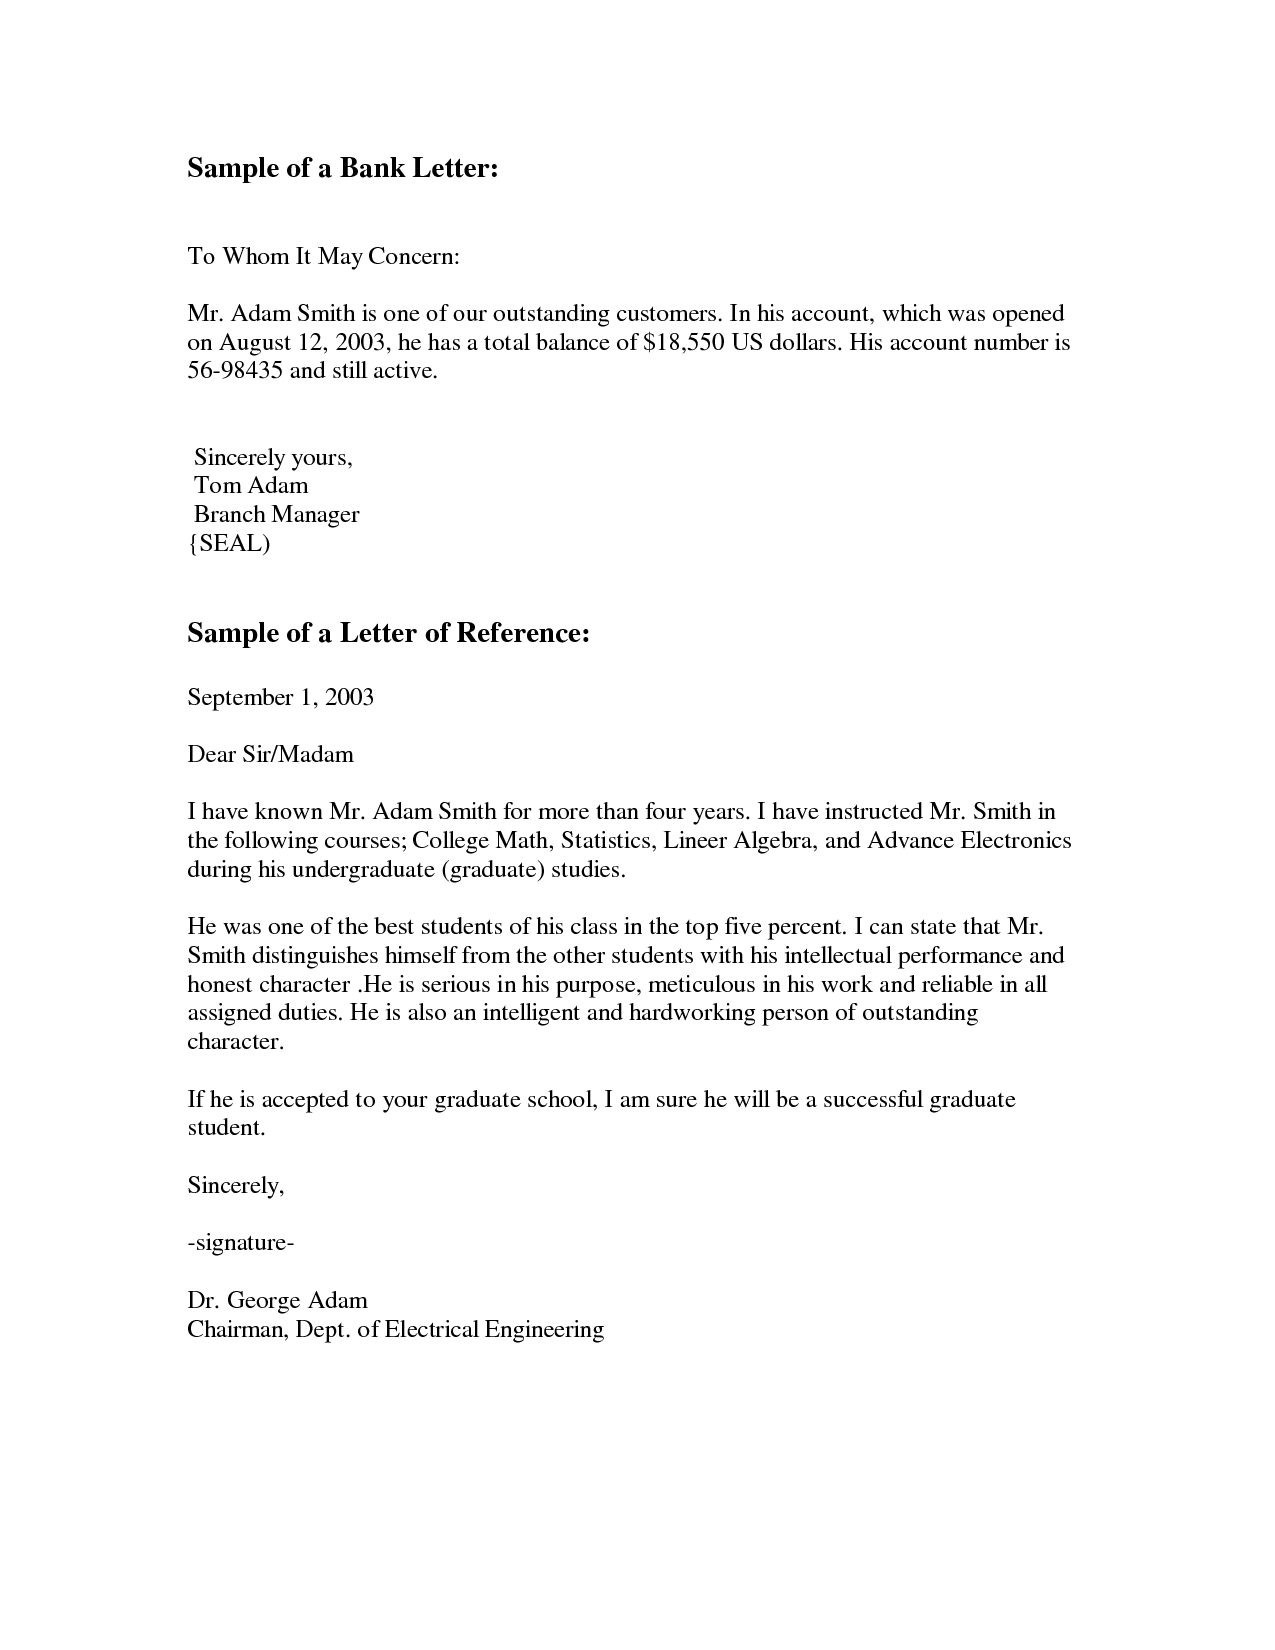 Welcome Letter Template for Wedding Guests - New Letter Re Mendation Template for Student